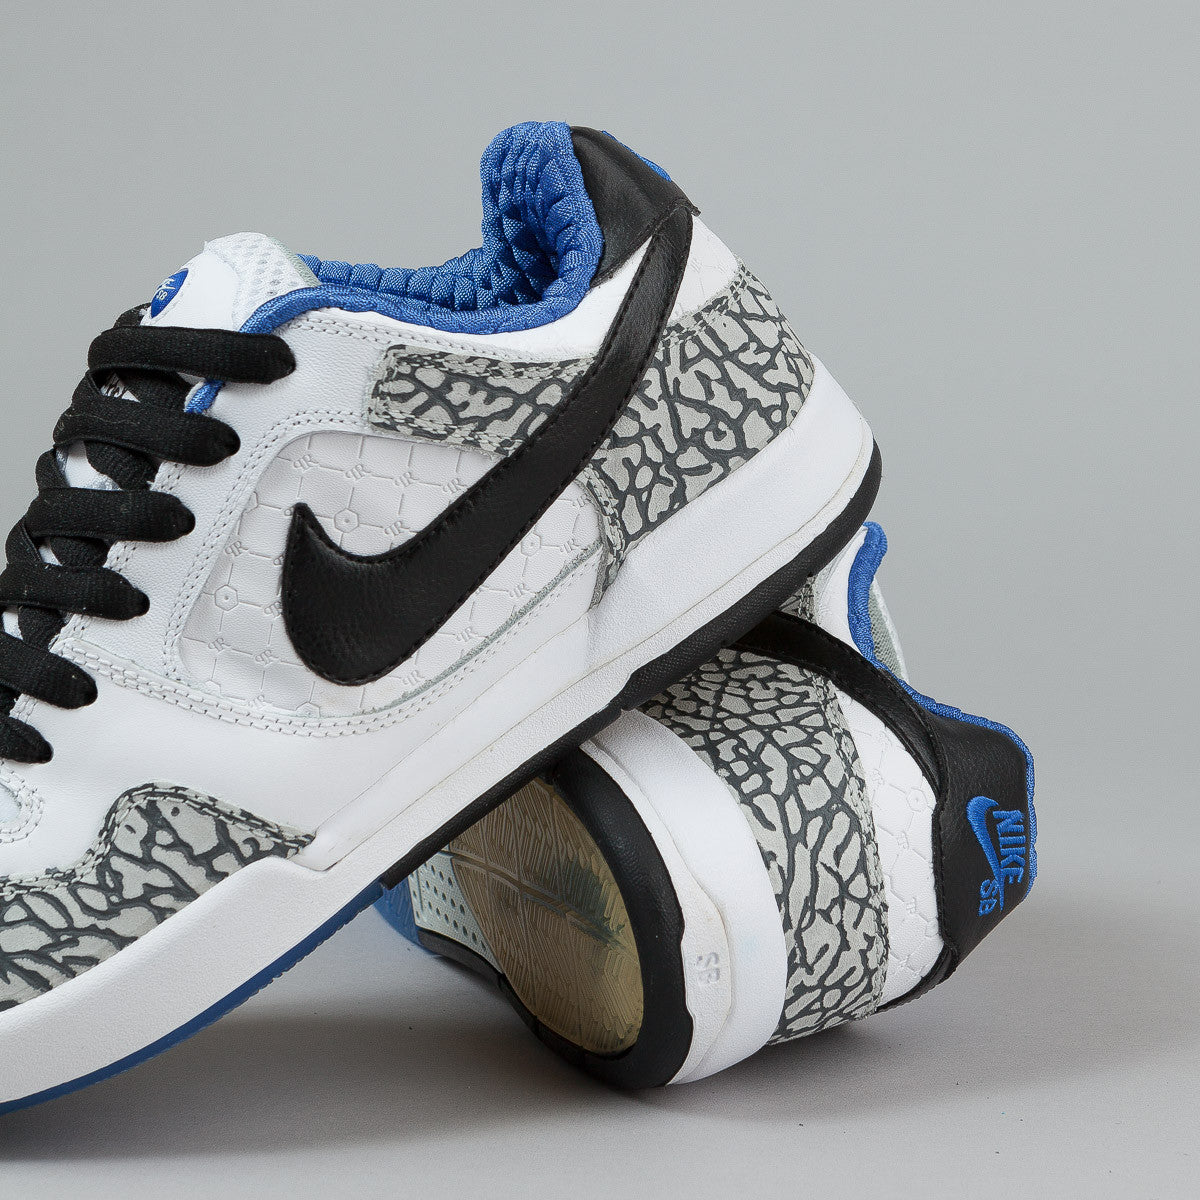 Nike SB Paul Rodriguez 2 Premium Shoes - White / Black